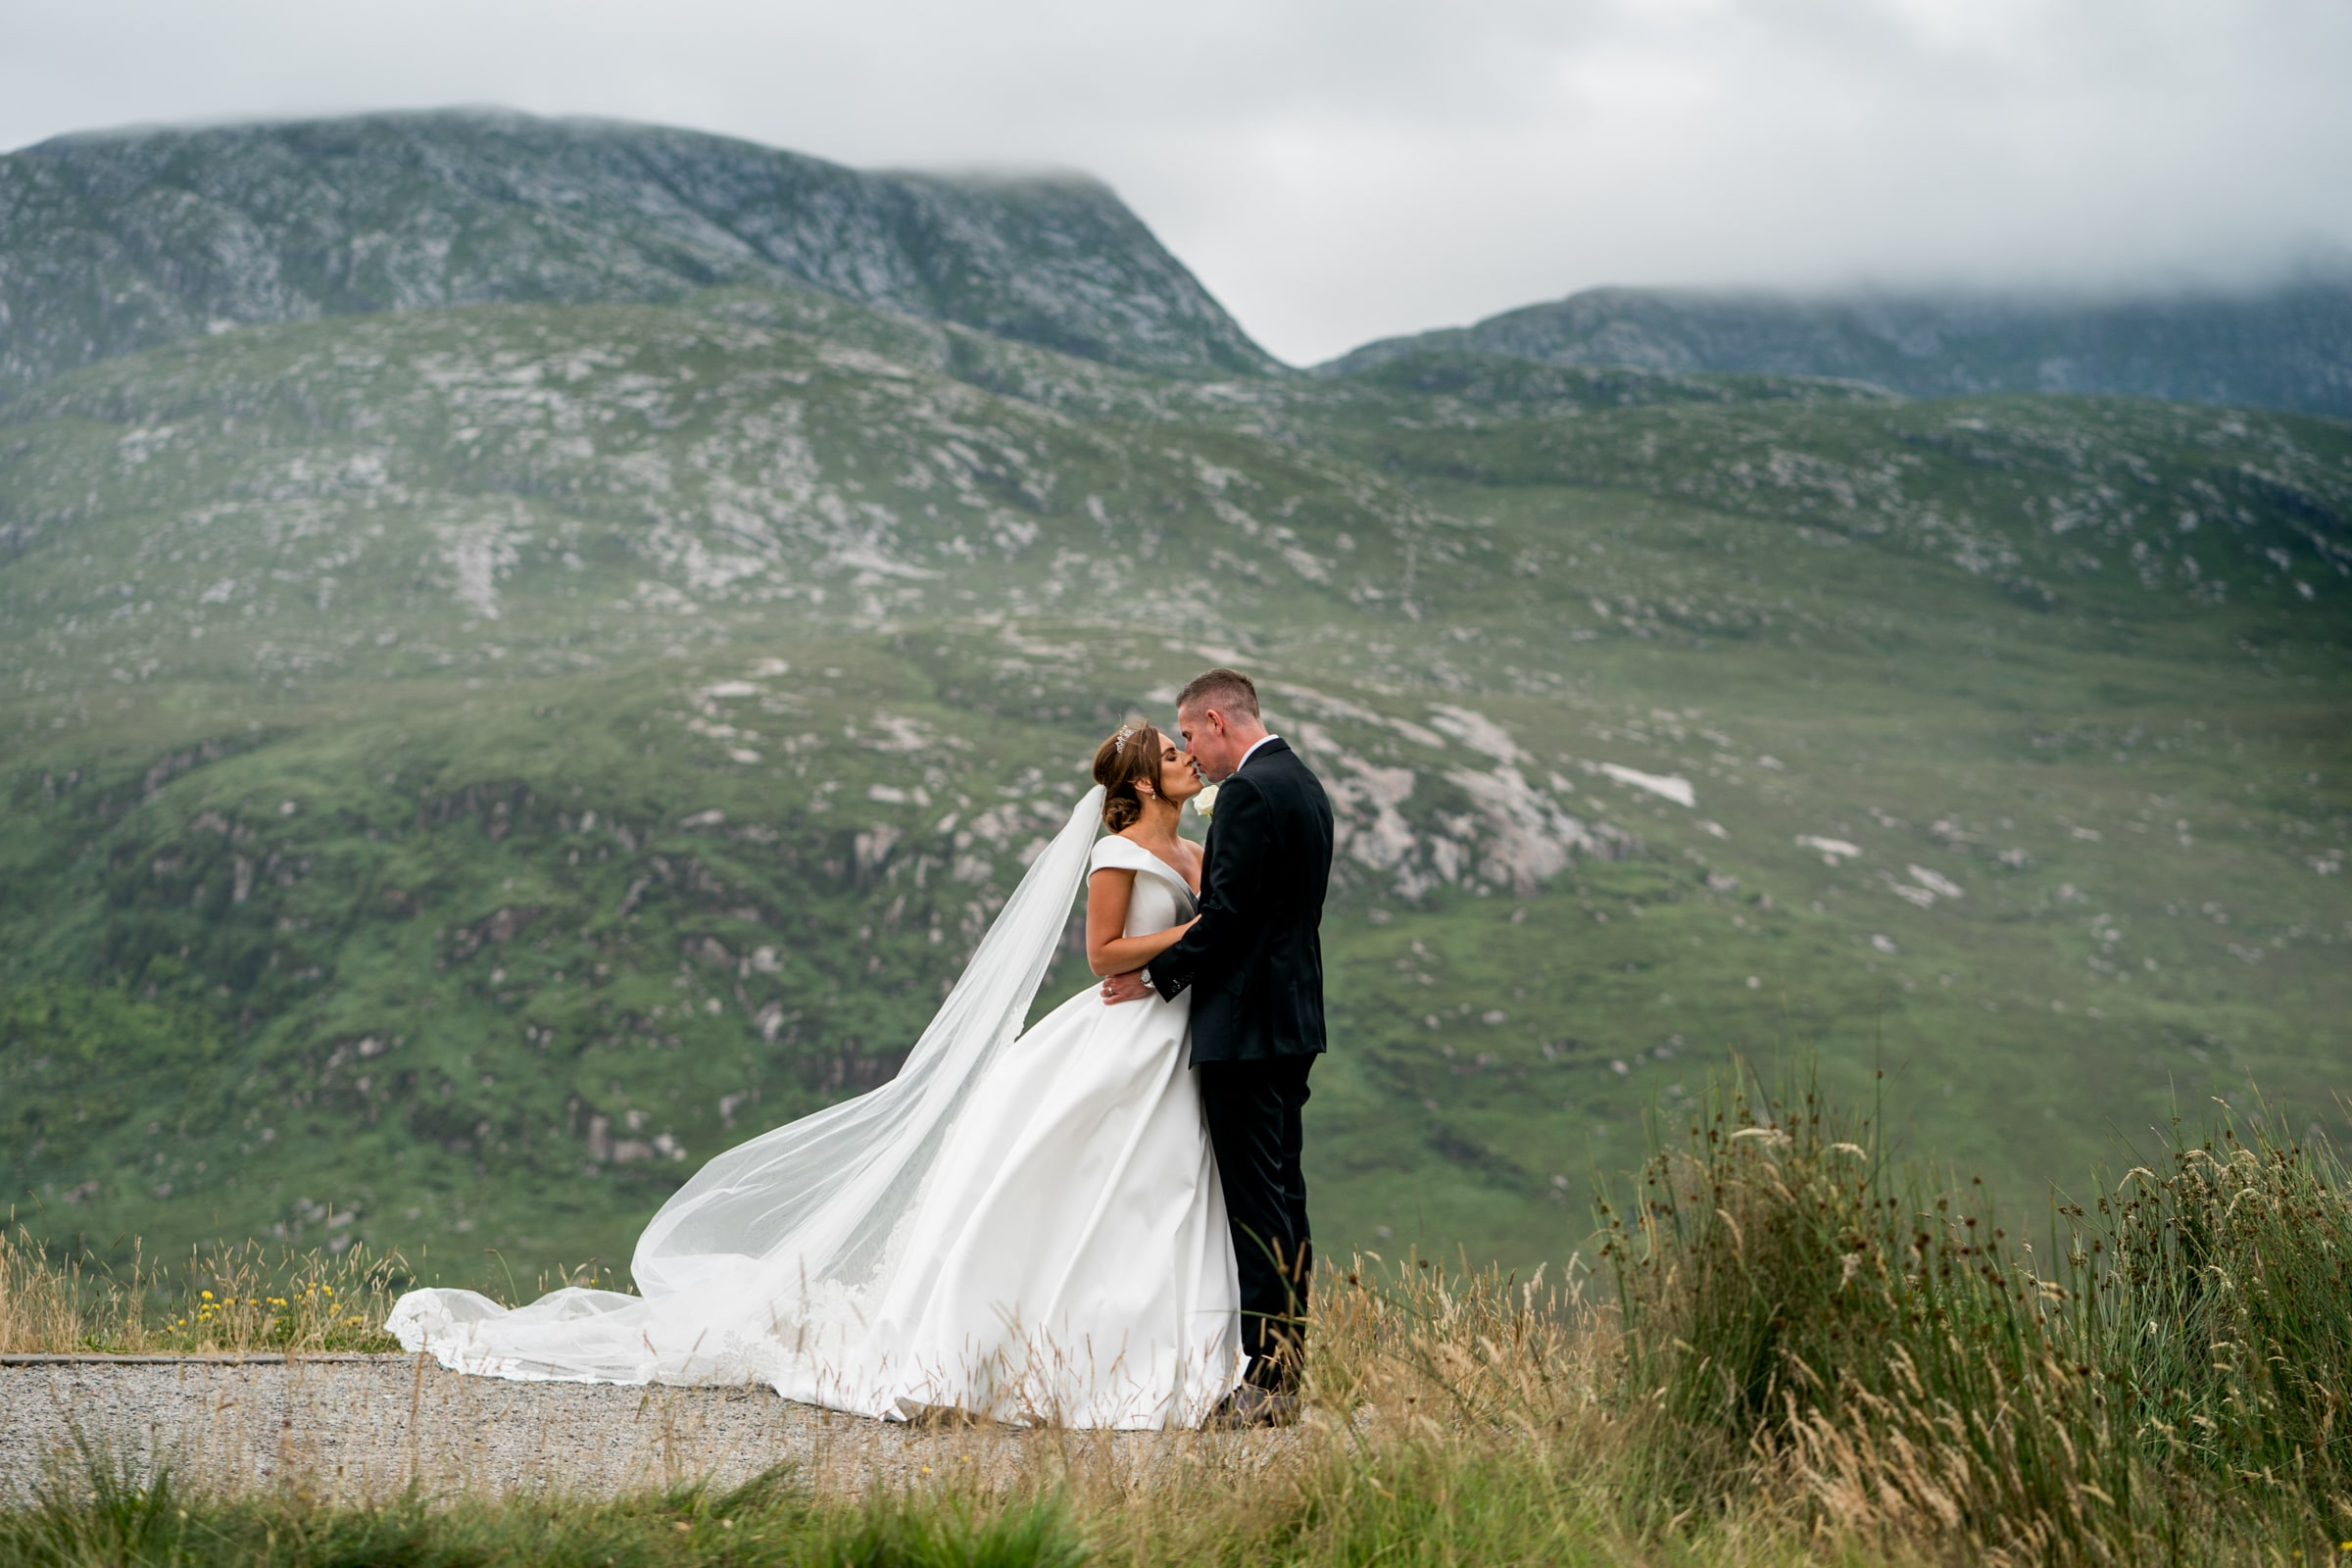 Bride and groom kissing with Dunwely, silver Tassie hotel wedding, donegal wedding venue, photographer donegal, bride and groom in the Poisoned Glen with Mount Errigal in the background, photo by Paul McGinty from Ghorm Studio photography Lough Eske.